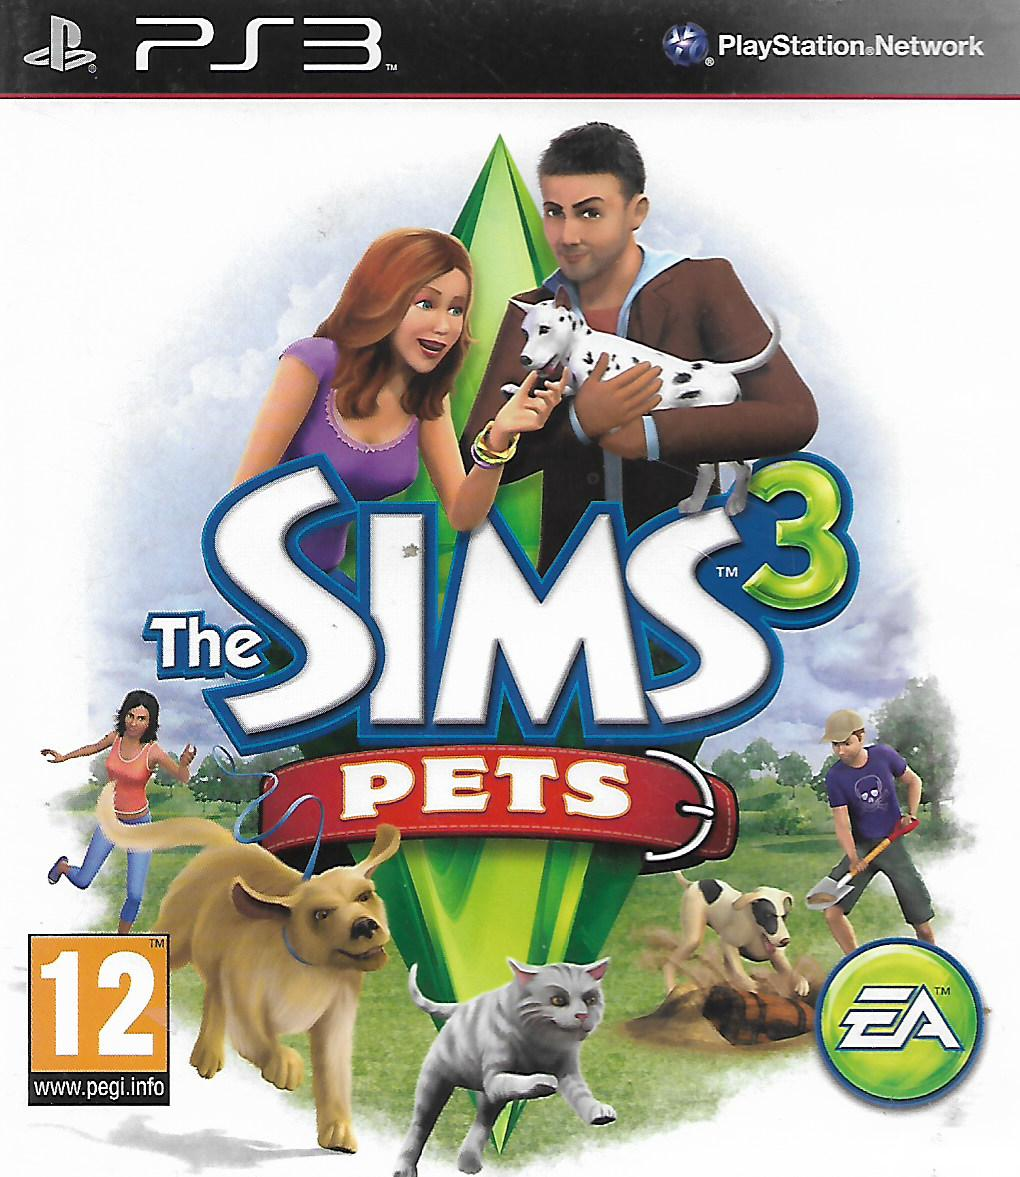 THE SIMS 3 - PETS (PS3 - bazar)